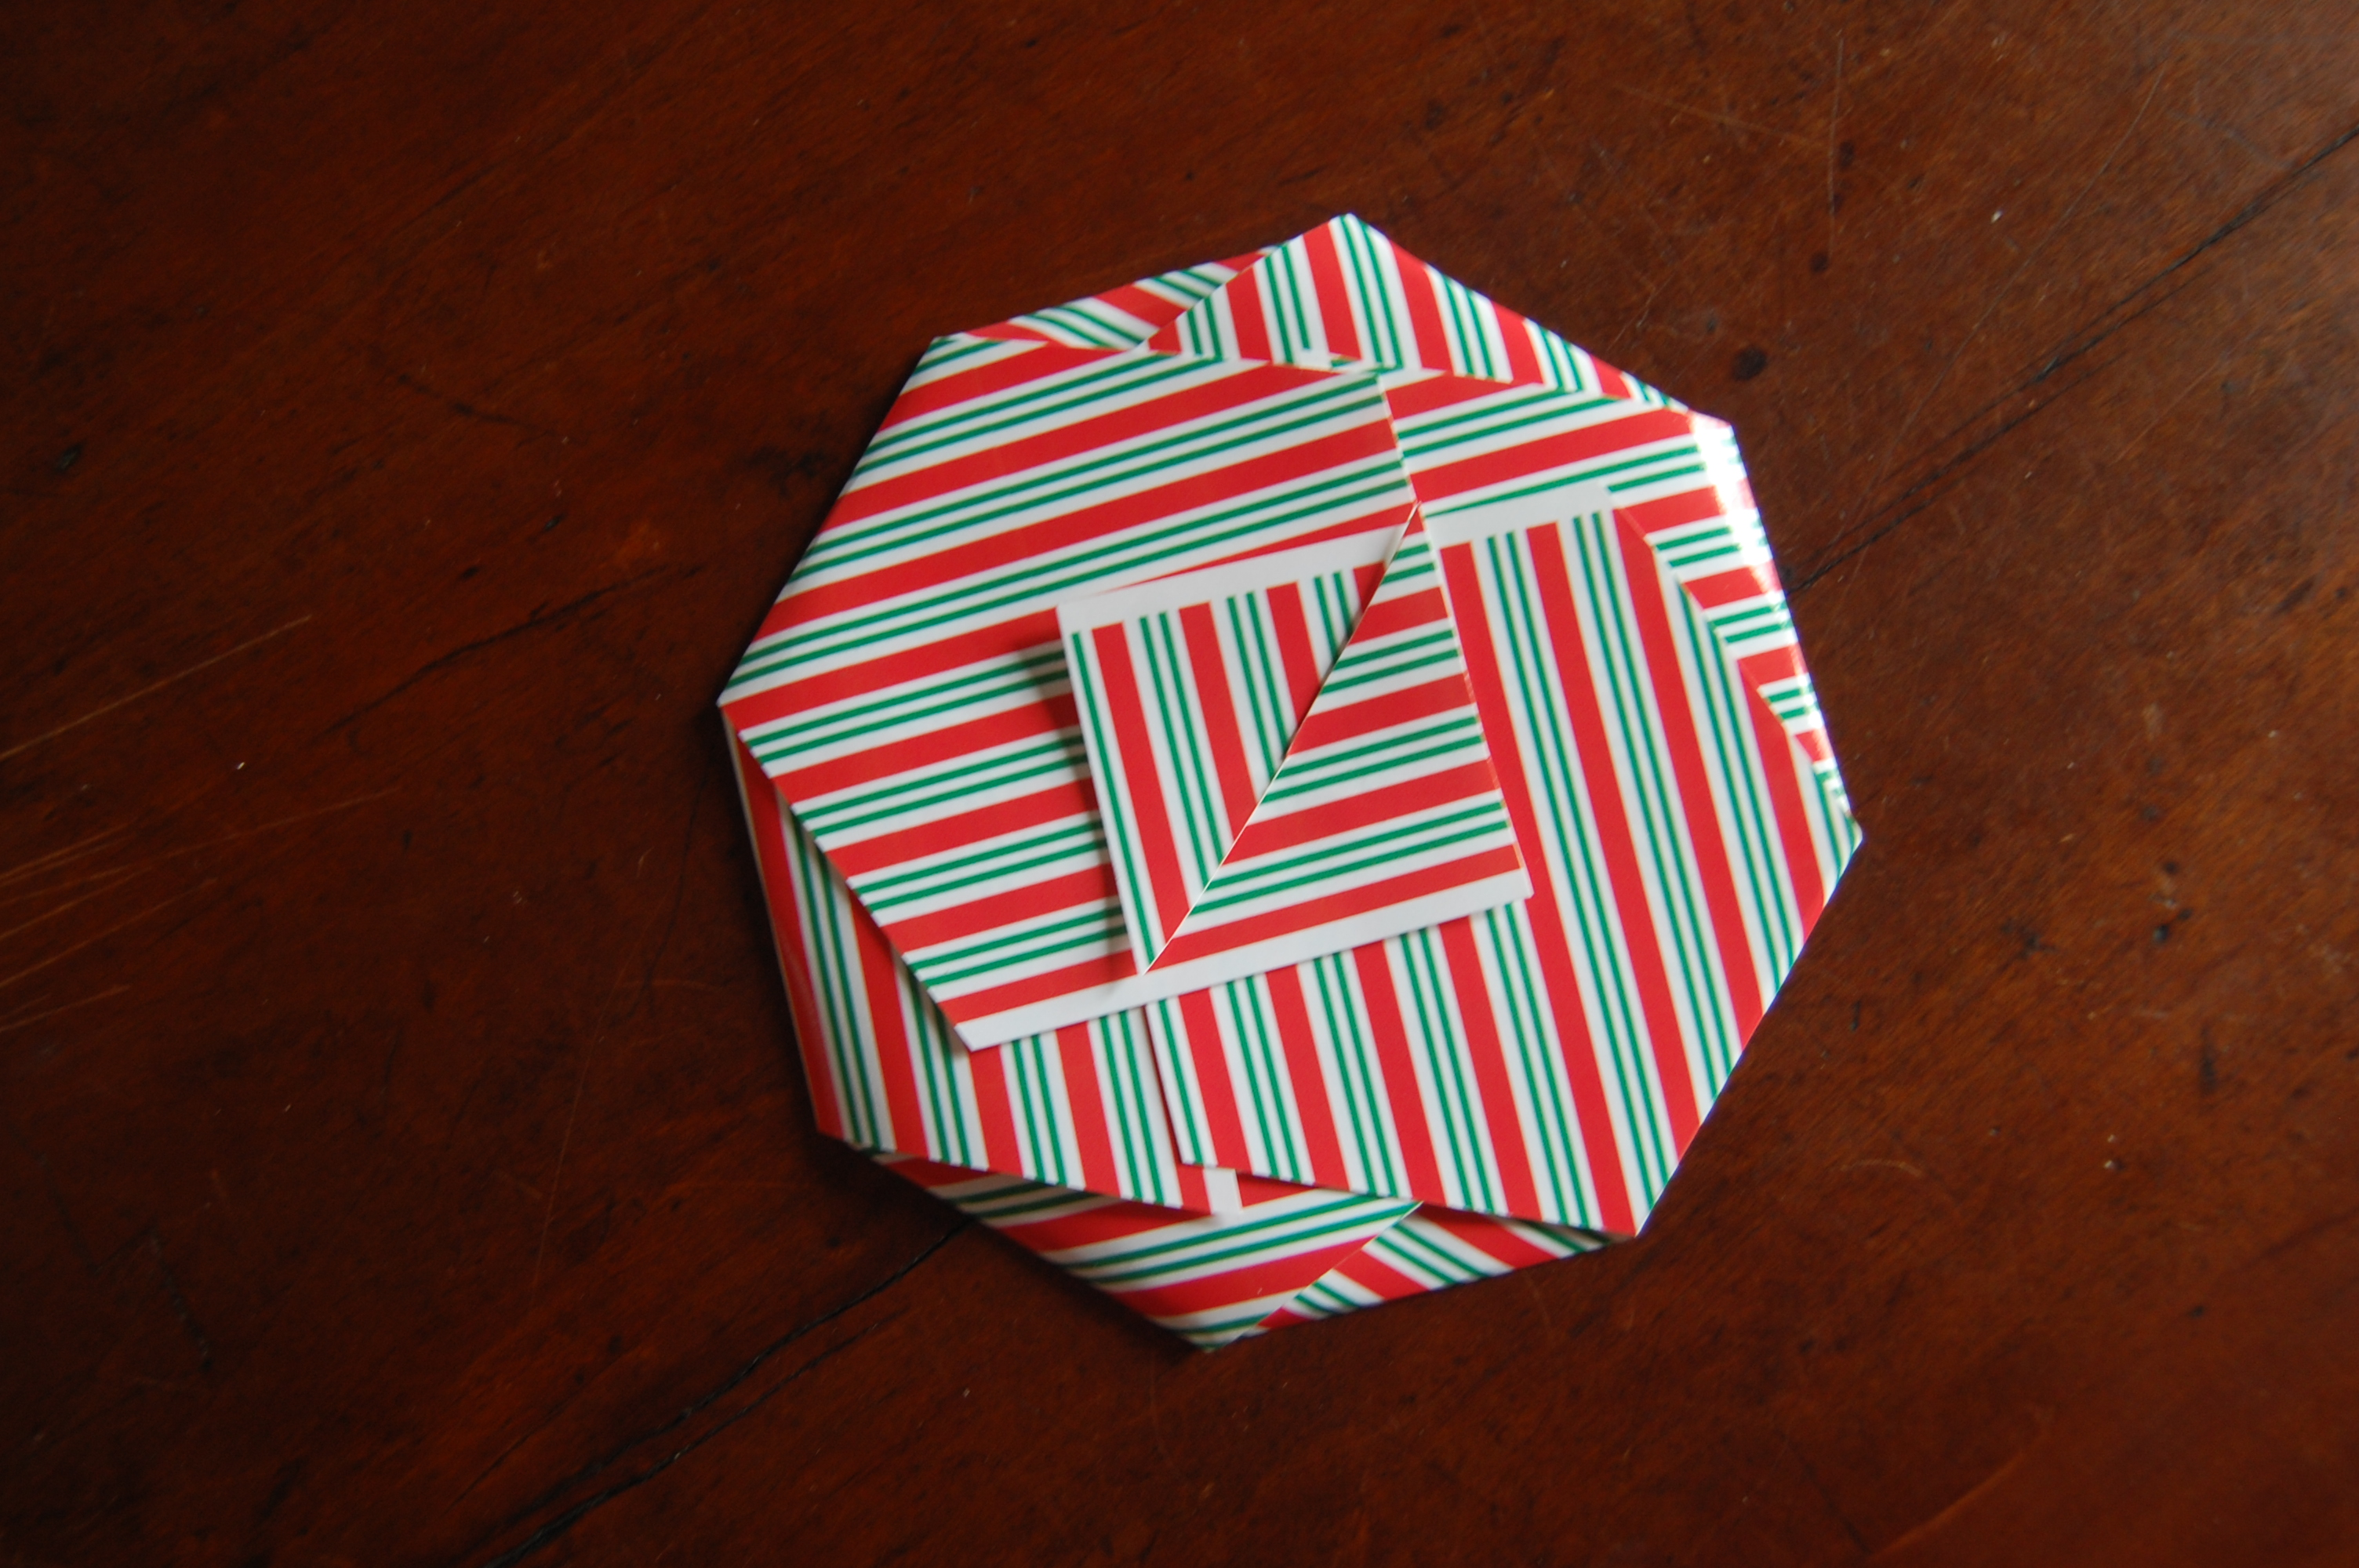 Customize this simple paper CD cover